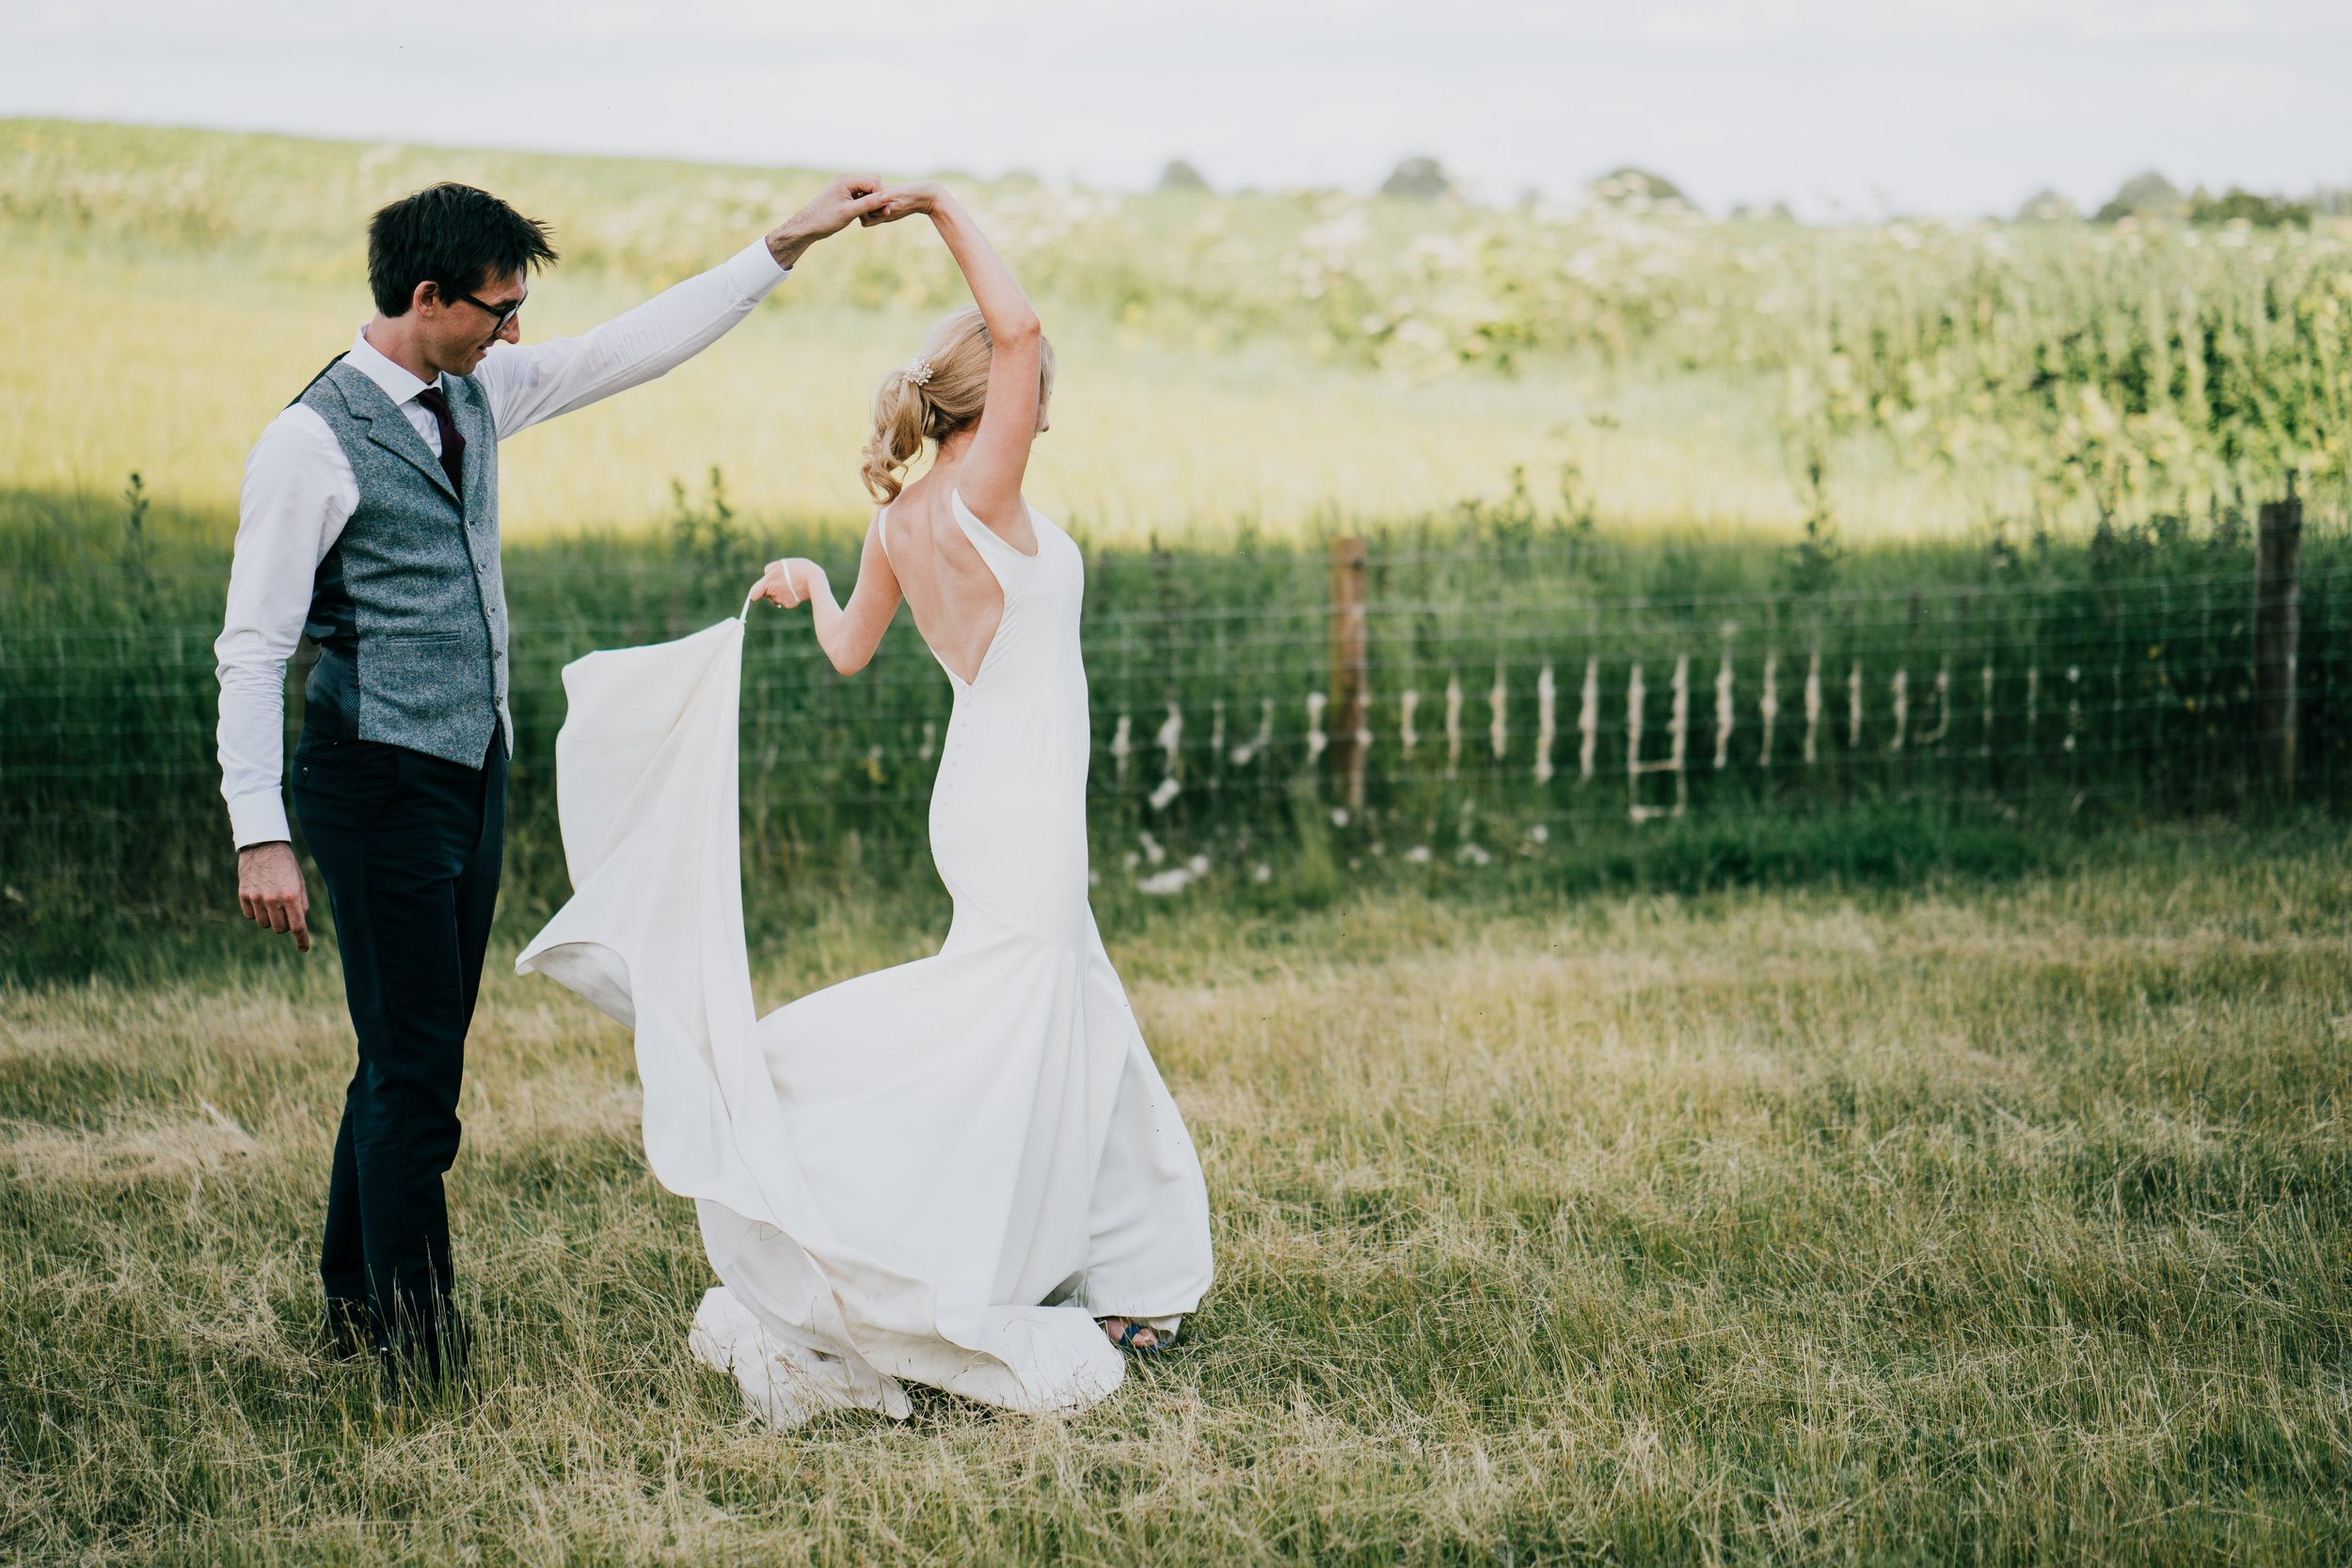 Christina & Dominic, June 2019 - We were planning an Italian themed wedding in the English Countryside (Cotswolds, Gloucestershire) so when I came across Emily online I thought she'd be perfect to help make our dream become a reality. We planned the wedding ourselves and hired Emily as our on-the-day coordinator to keep everything running smoothly. During the planning stages Emily was always on hand to help with any questions we had and to offer advice with things like timings for a 4 course meal or photos which was really helpful. We met at the venue 6 weeks before and I knew we'd made the right choice as Emily took control and asked the venue all the questions I wouldn't have thought of.We didn't want to stress about timings and coordinating things on the day and with a dry hire venue and numerous suppliers this was always going to be difficult. From the moment Emily arrived on the day I didn't have a thing to worry about. She was always there checking that we were all happy and coordinating everything to such precision that the entire day went perfectly. I felt such relief knowing that I could just relax and everything was in hand. Emily is not only highly professional and amazing at her job but just a lovely, smiley person to have as part of your wedding team. We couldn't recommend her highly enough whether you are planning a wedding in Italy or in the UK. You definitely won't regret it!